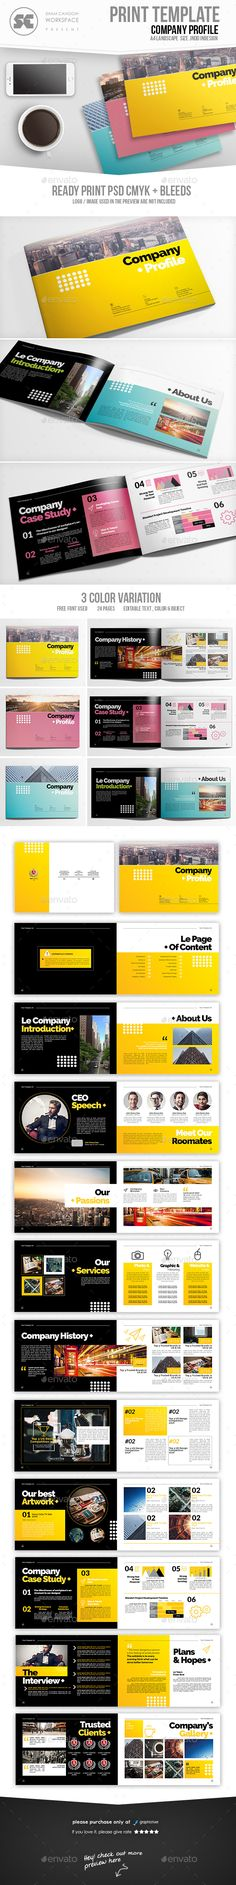 Company Profile Template Vector Free Vector Download In AI, EPS